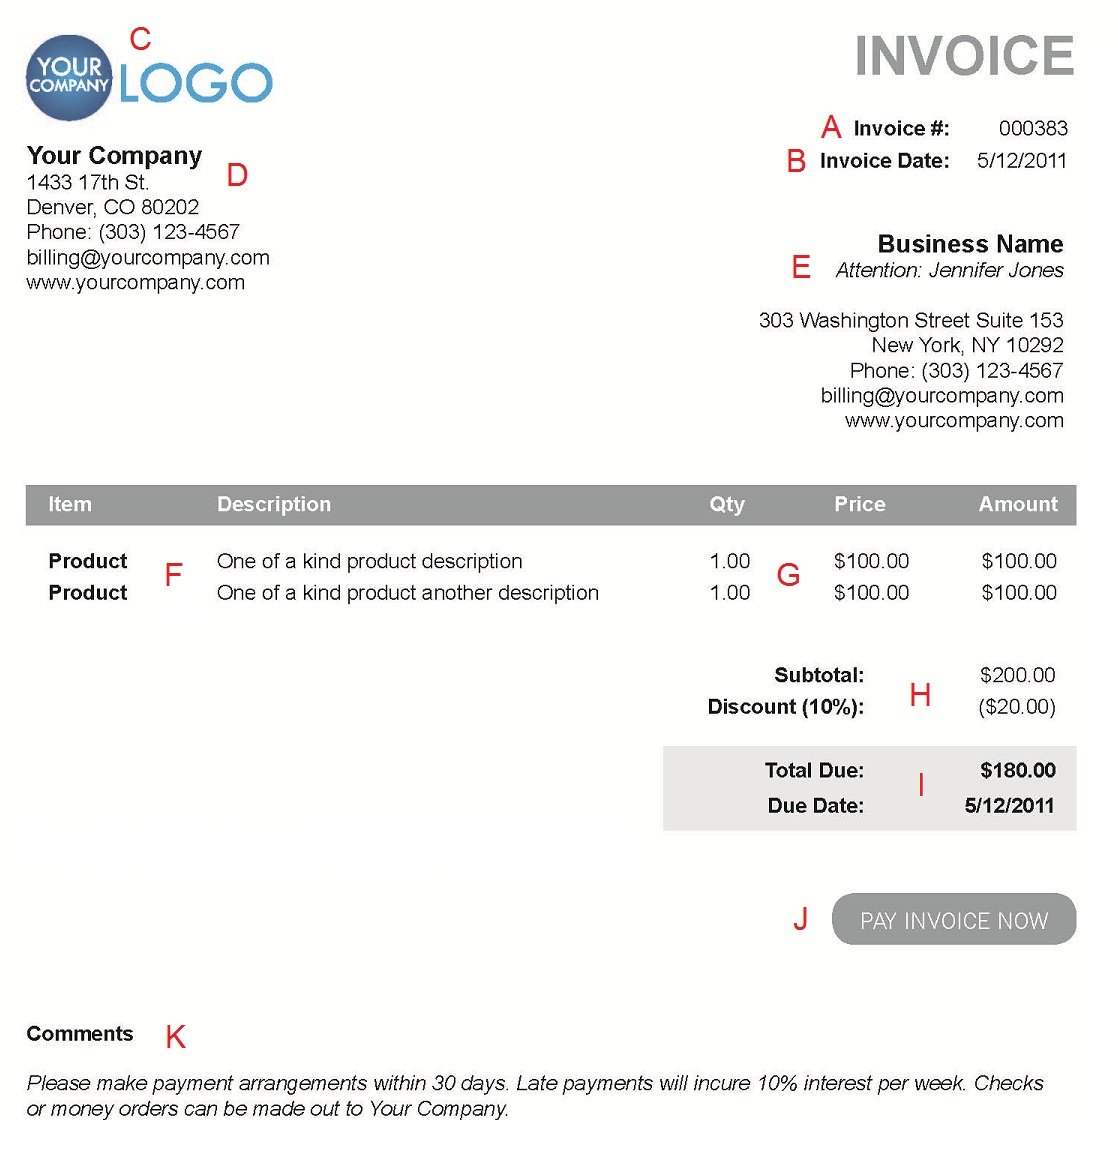 Opposenewapstandardsus  Splendid The  Different Sections Of An Electronic Payment Invoice With Hot A  With Lovely Do You Need An Abn To Invoice Also Self Employed Invoice Template Word In Addition Copy Invoice And Export Invoice Sample As Well As Payment Terms For Invoices Additionally Myob Invoice Templates From Paysimplecom With Opposenewapstandardsus  Hot The  Different Sections Of An Electronic Payment Invoice With Lovely A  And Splendid Do You Need An Abn To Invoice Also Self Employed Invoice Template Word In Addition Copy Invoice From Paysimplecom